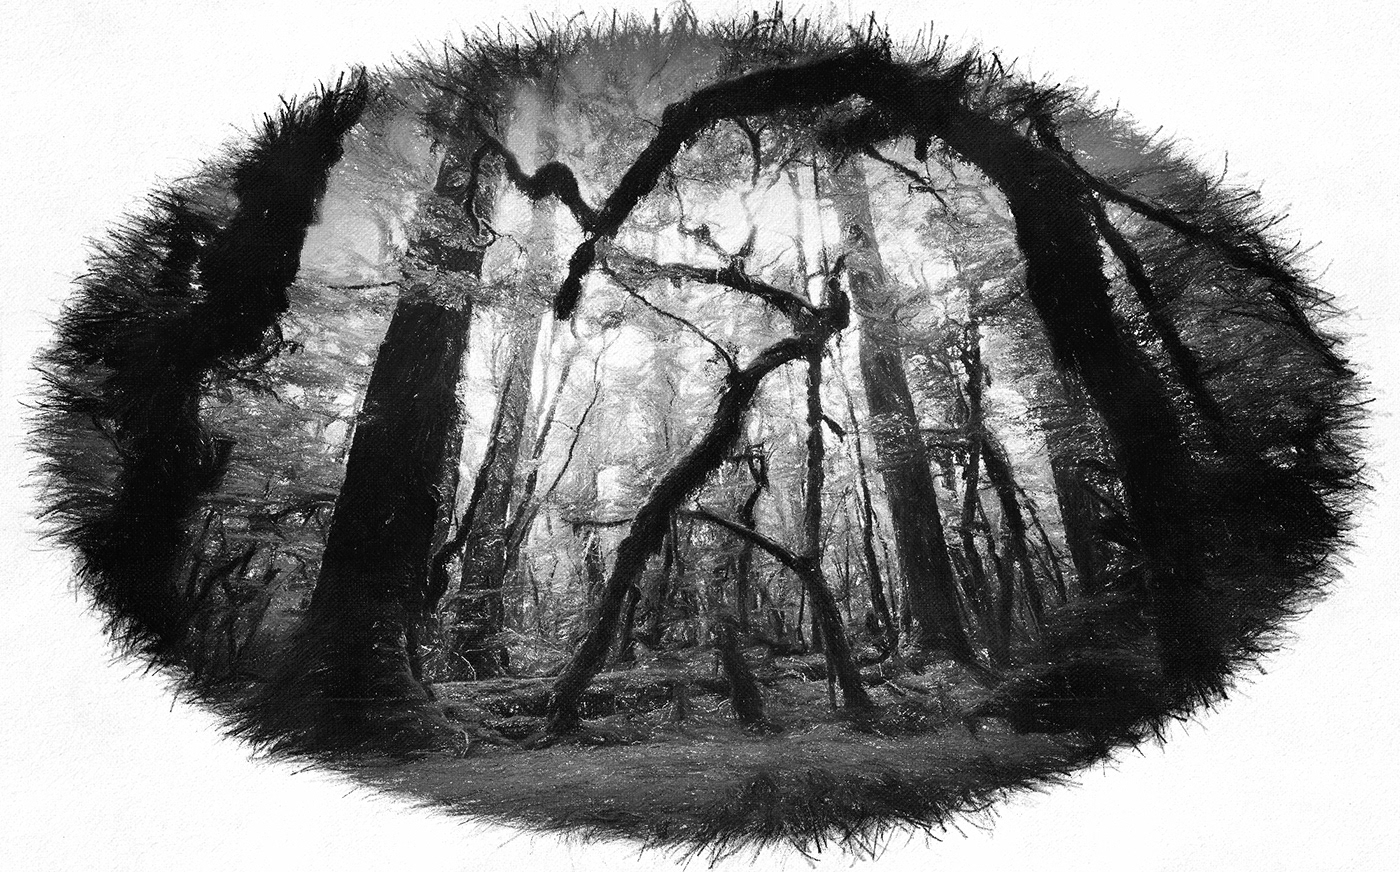 trees arbres forêt forest monochrome bnw W00DS NVENTFISCHER